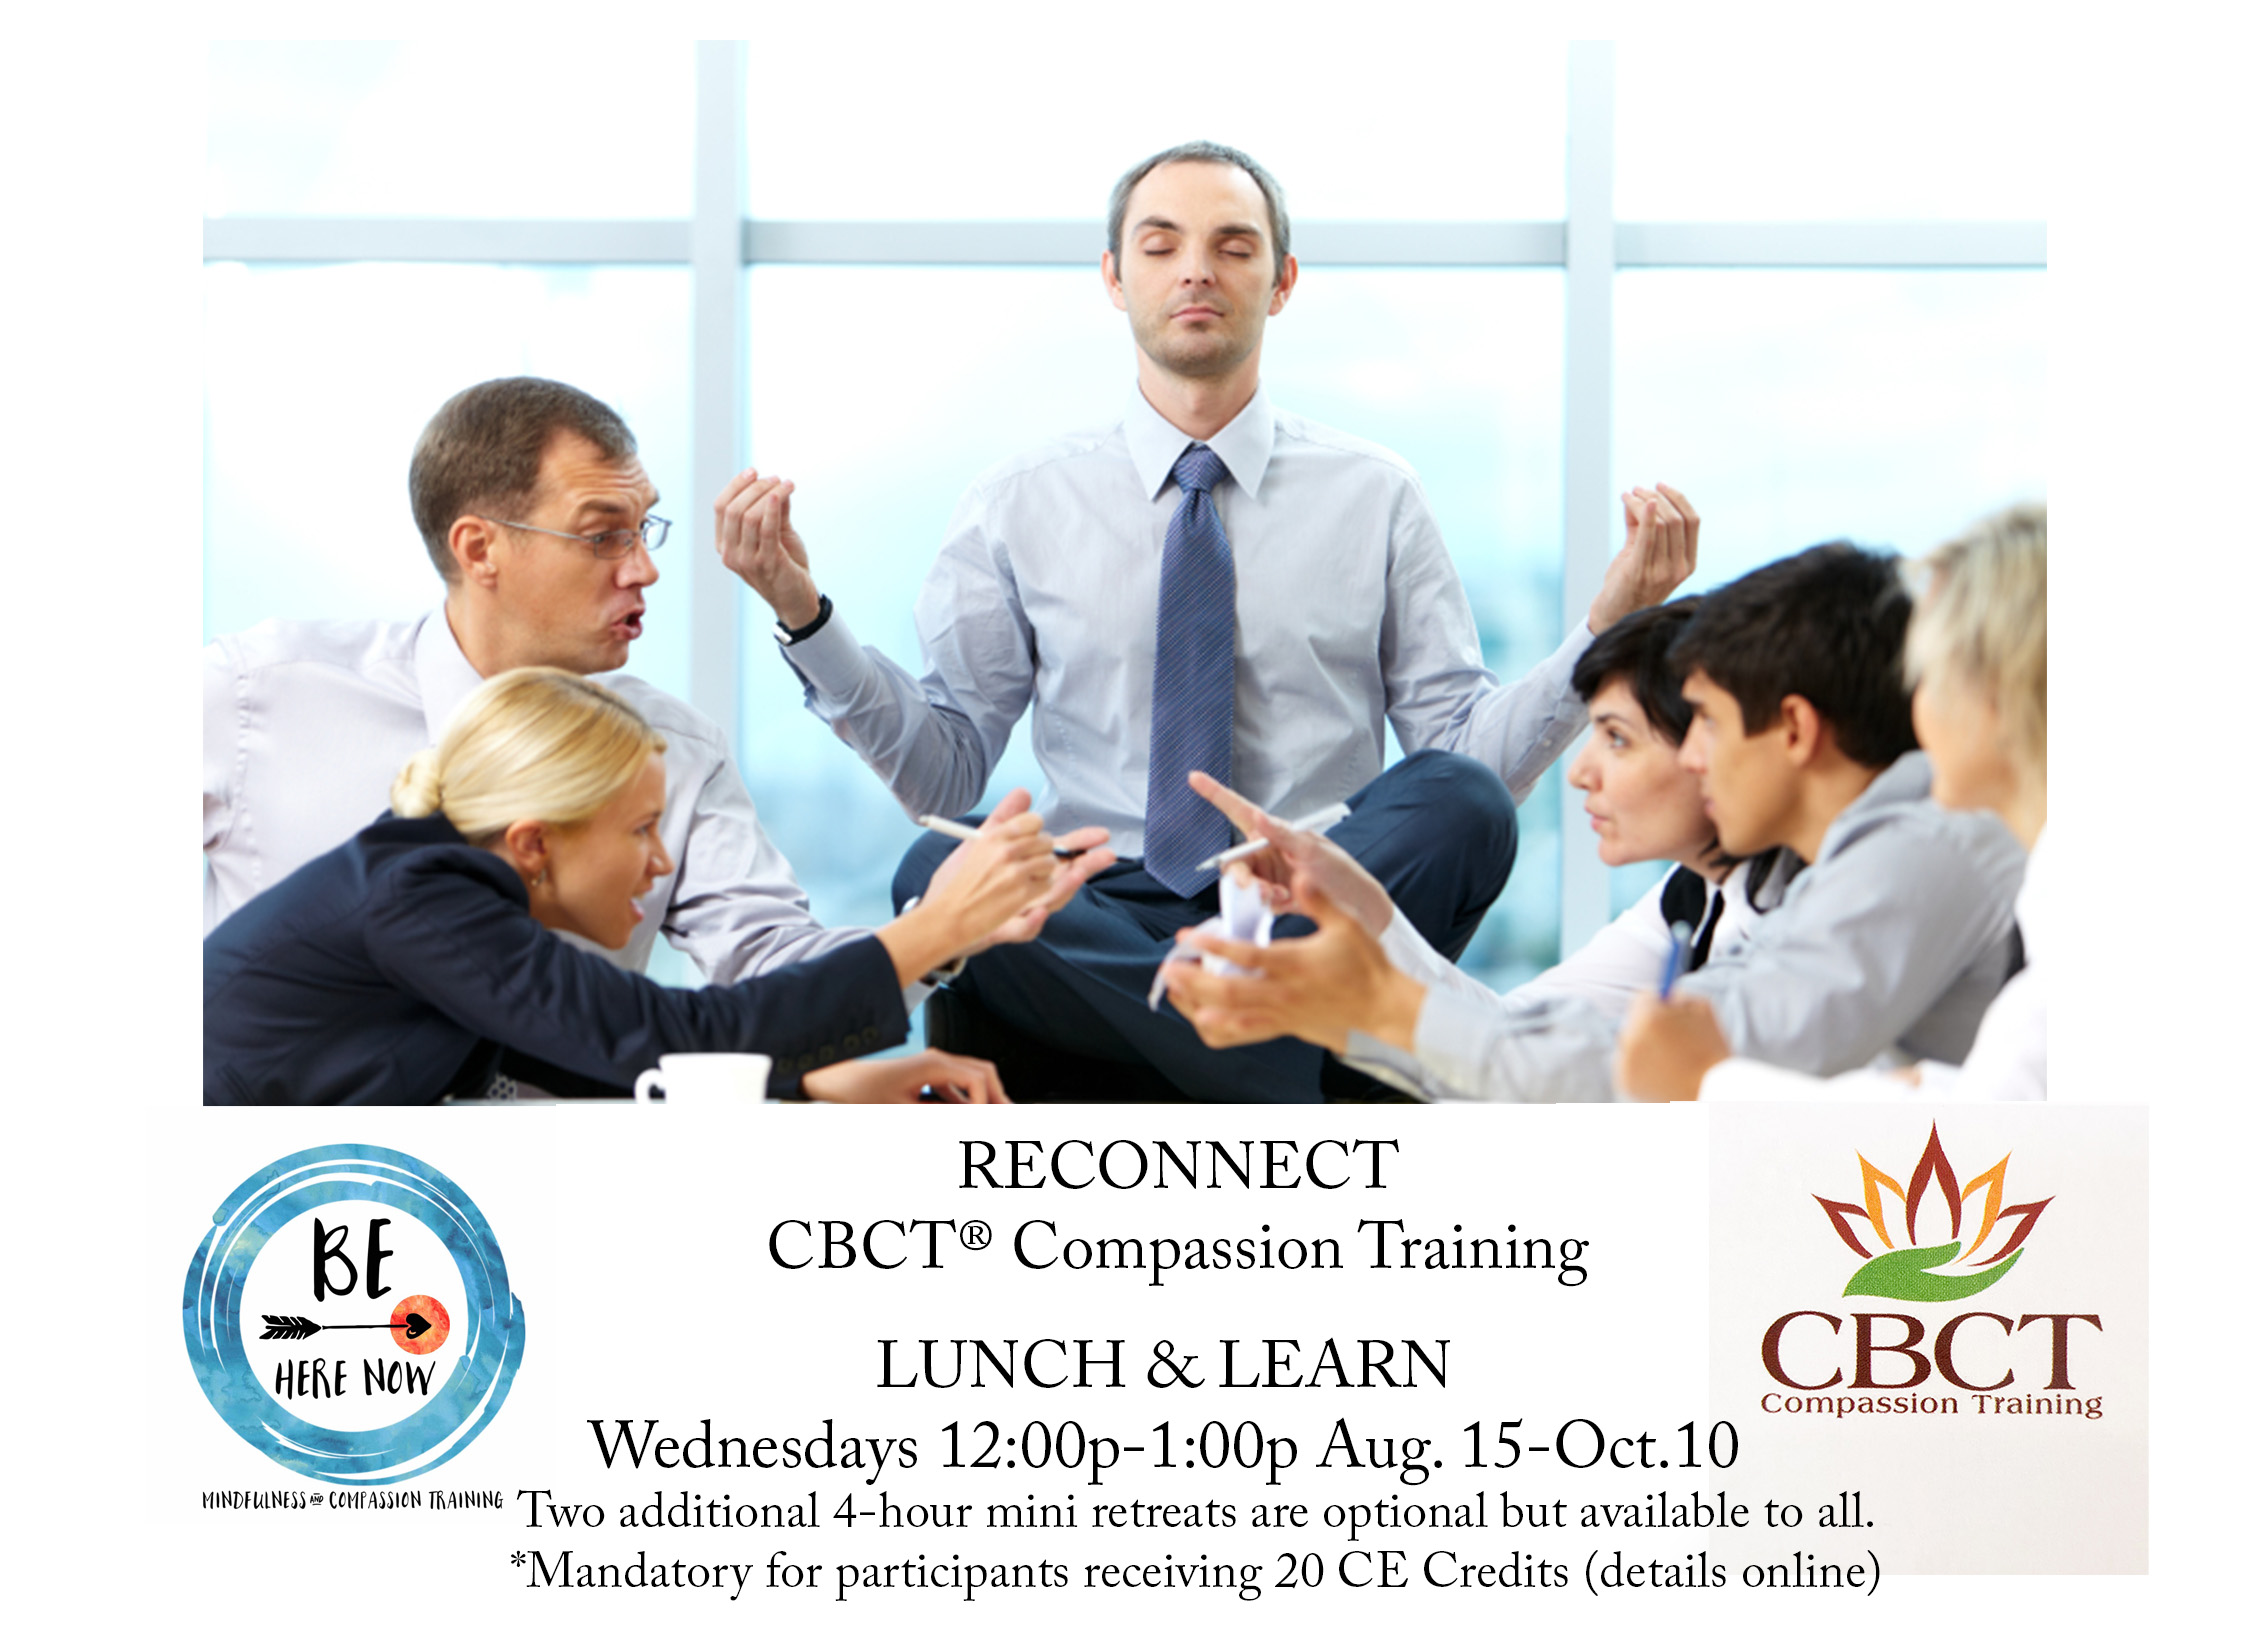 CBCT® Compassion Training - August 15-Oct.10th Wednesdays12:00pm-1:00 pm+20 CE CreditsSept. 9th 11:00am-3:00pm and Oct. 14th 11:00am-3:00pmSAMA Food for Balance 56 E Andrews Dr. NW Atlanta, GA 30305Why should we train in compassion? Why is compassion important or seen as valued in today's society?20 Continued Education Credits are offered to all helping professionals through Emory University.Details about this class can be found here.